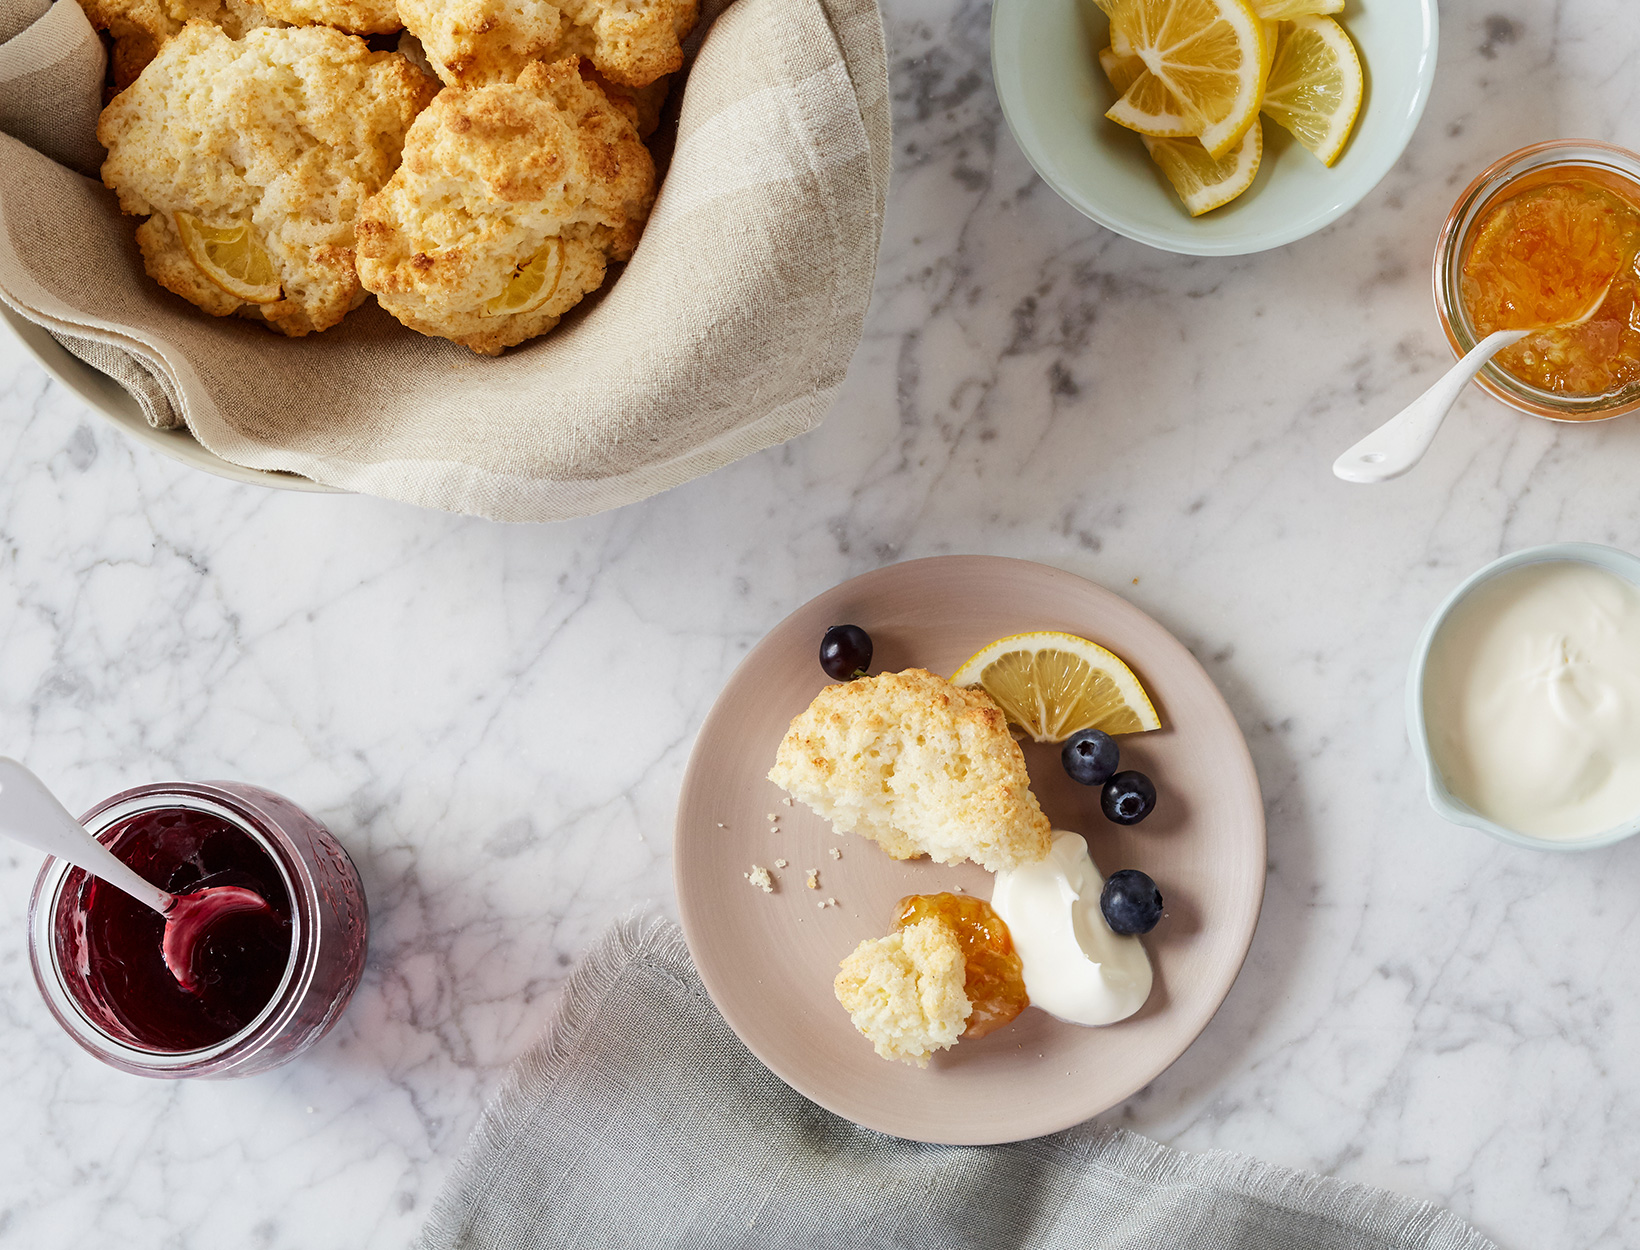 Gluten-Free Drop Biscuits with Lemon Zest